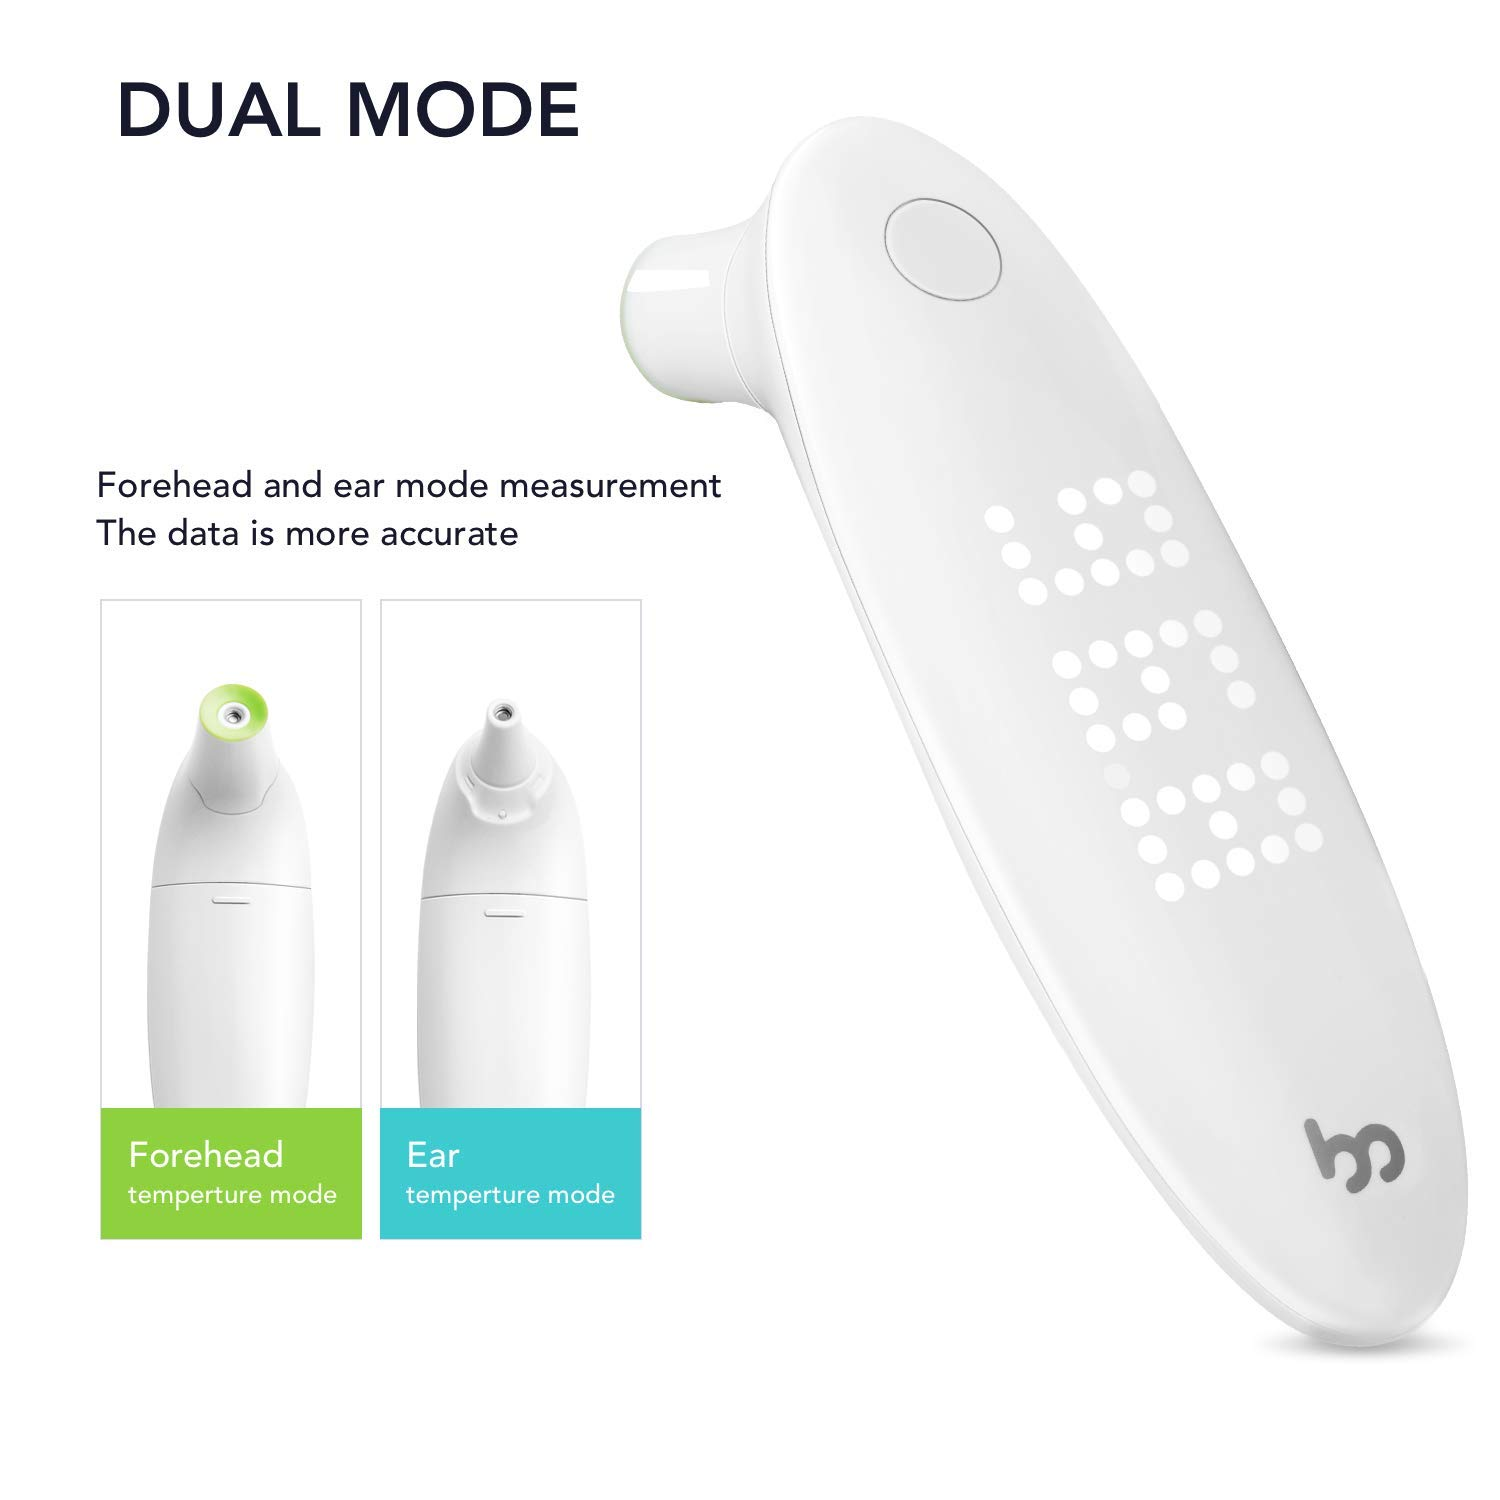 Medical Ear and Forehead Thermometer for Fever, Infrared Digital Thermometer for Baby Kids and Adults, Accurate One Second Instant Read Thermometer